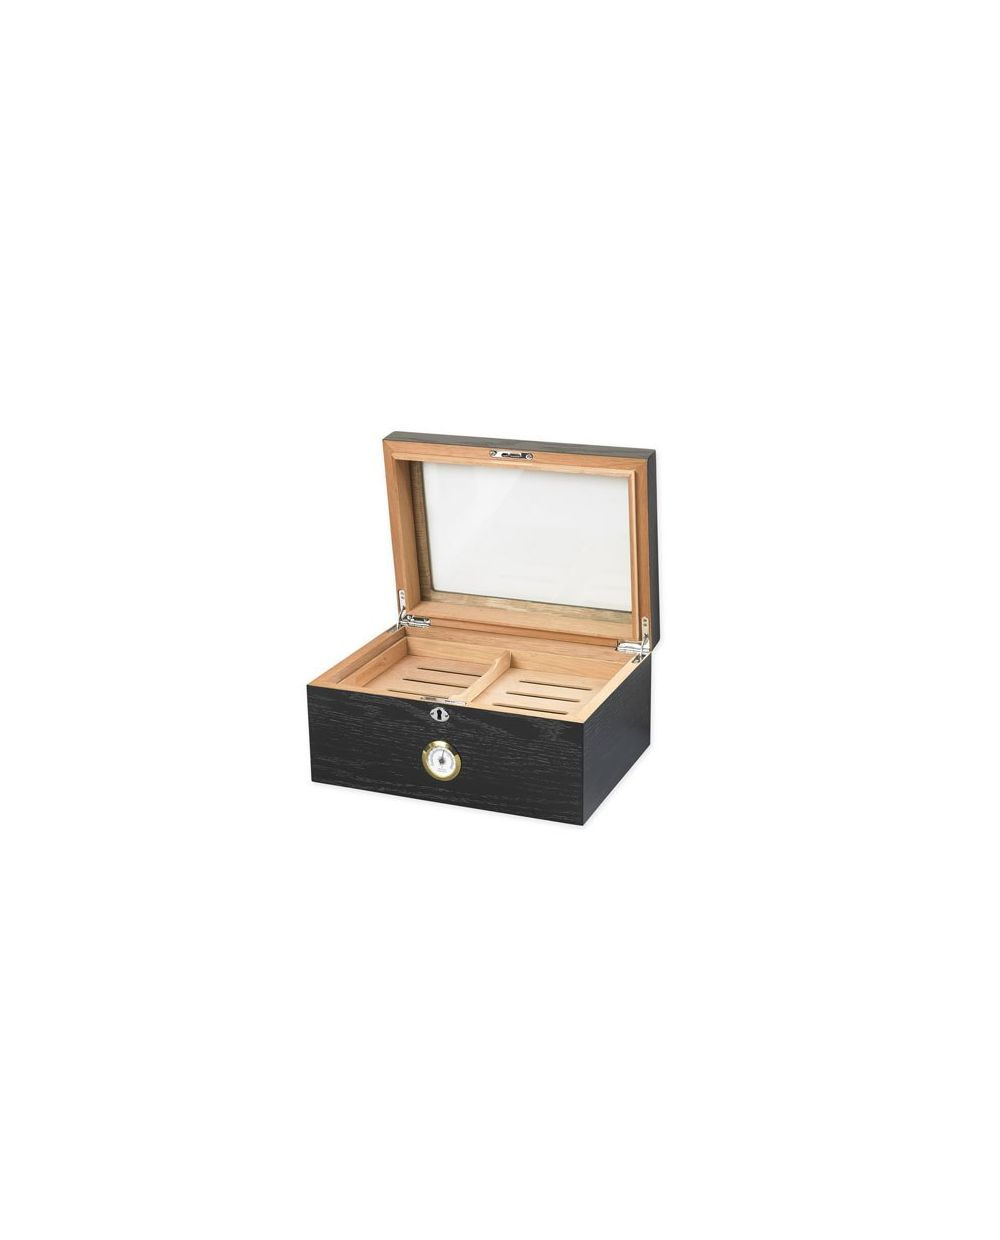 Milano 75 100 Cigar Glass Top Humidor Black Oak